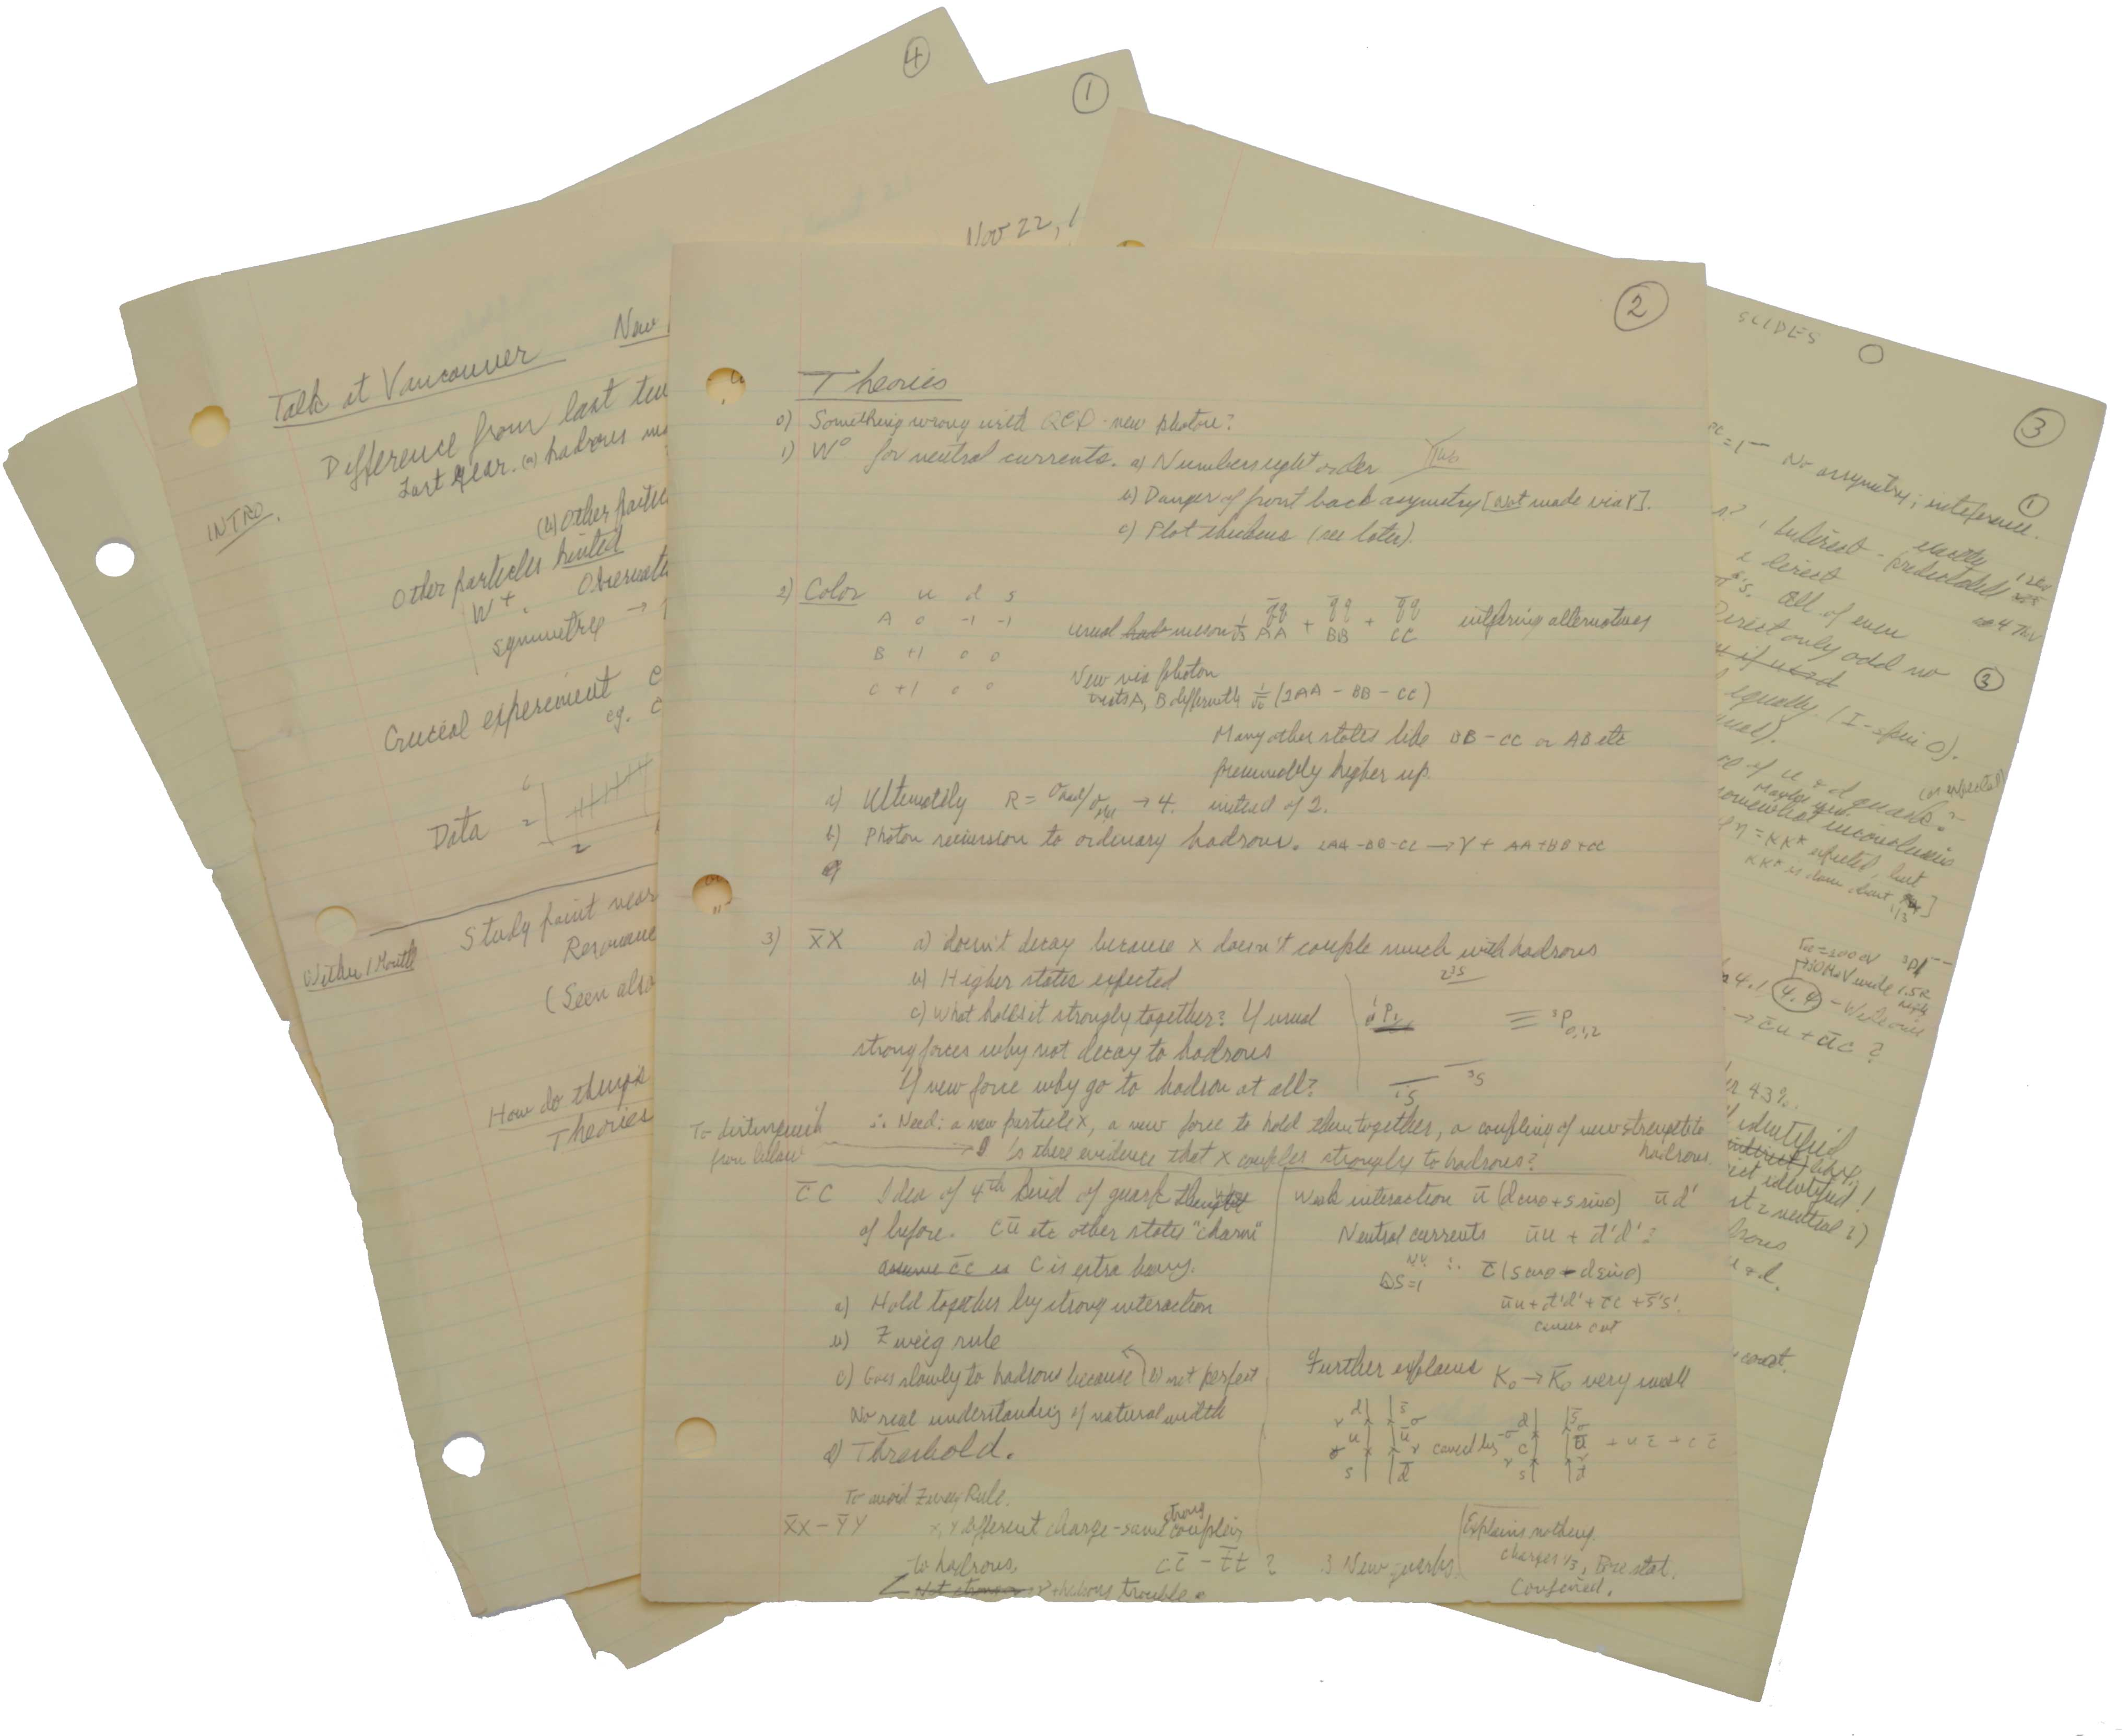 Autograph manuscript, unsigned, entitled 'Talk at Vancouver New Particles etc.' Vancouver, Canada, 22 November 1975. Richard Phillips FEYNMAN.